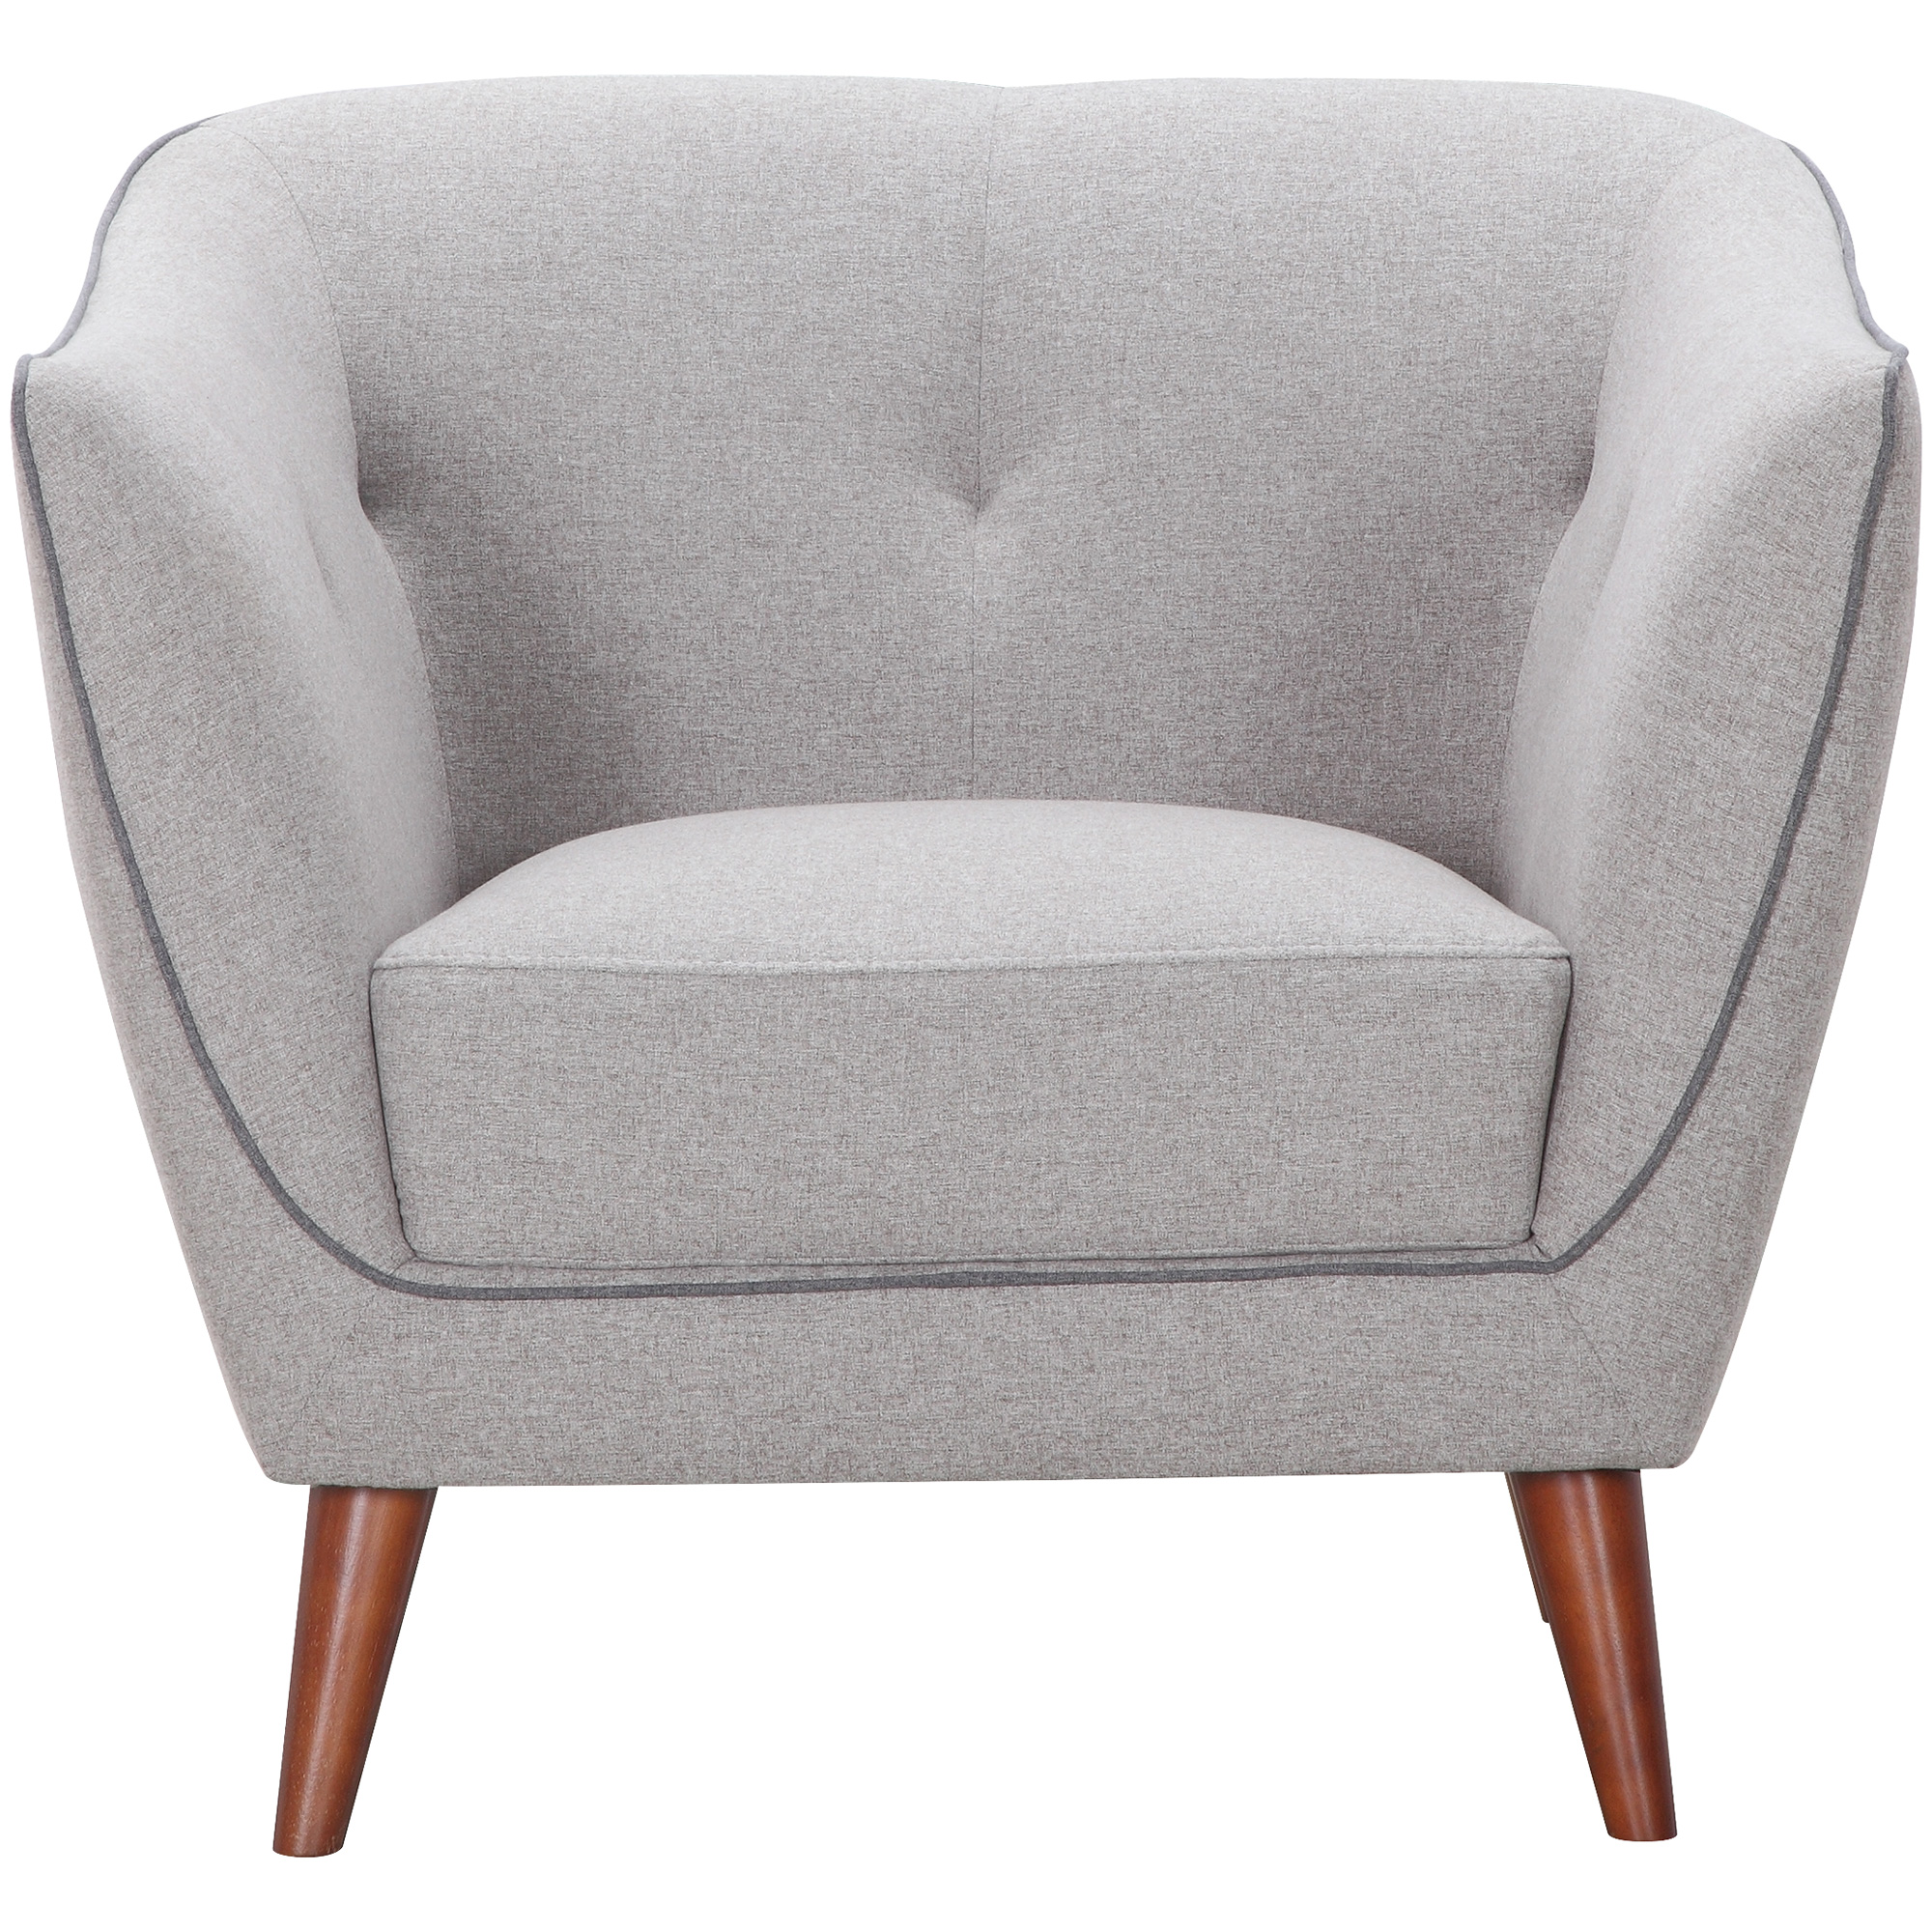 Urban Chic Upholstery | Avery Concrete Chair